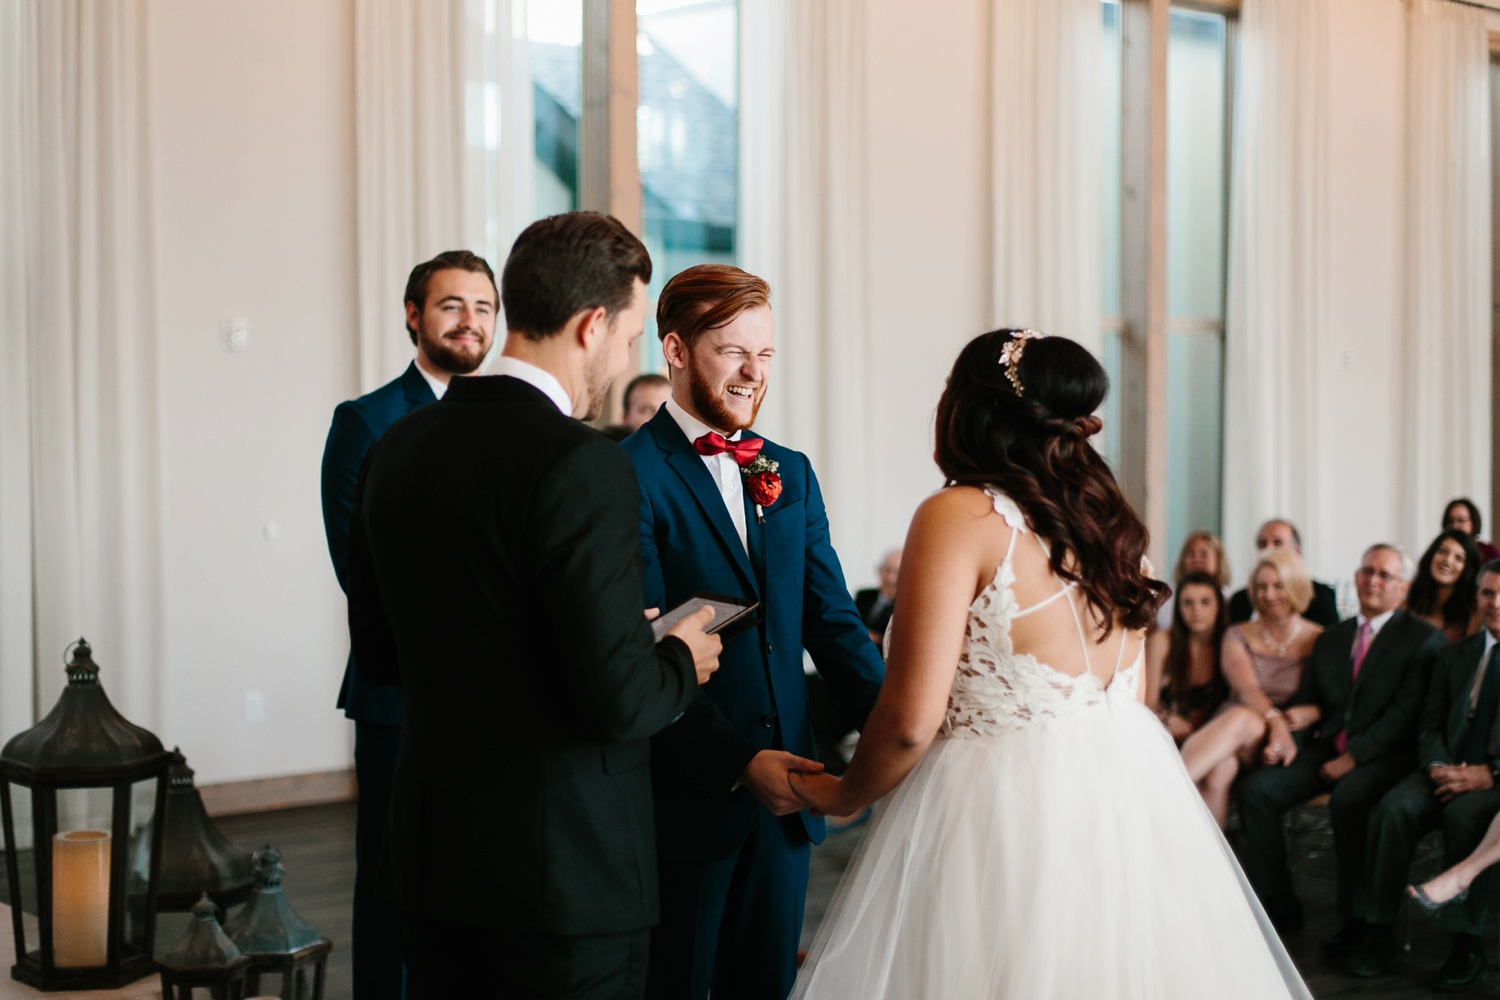 Grant + Lysette | a vibrant, deep burgundy and navy, and mixed metals wedding at Hidden Pines Chapel by North Texas Wedding Photographer Rachel Meagan Photography 103